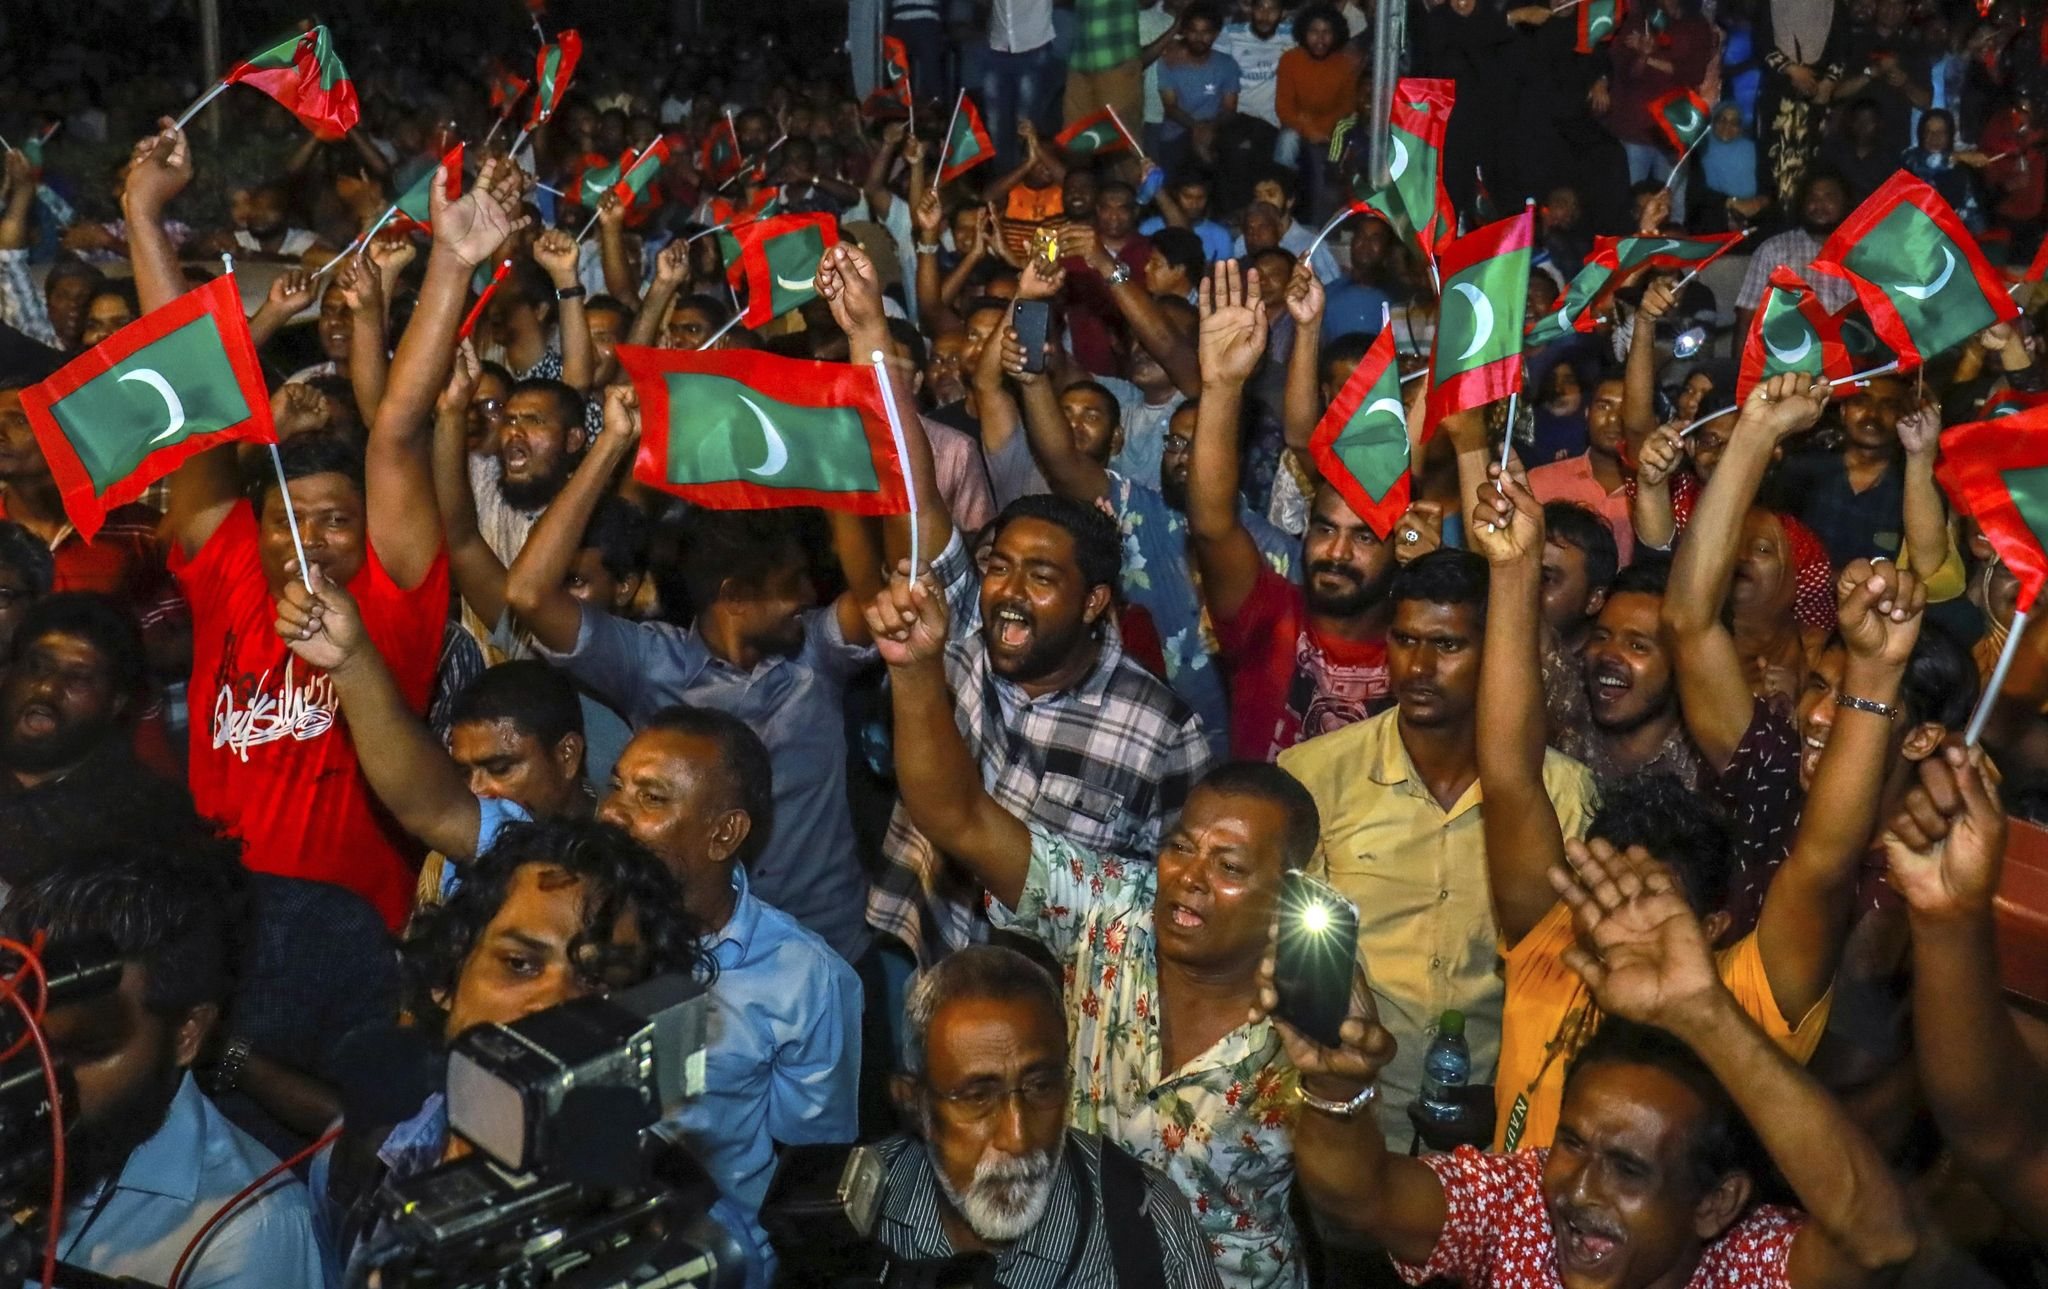 Timeline of political events leading up to Maldives election - Washington Times